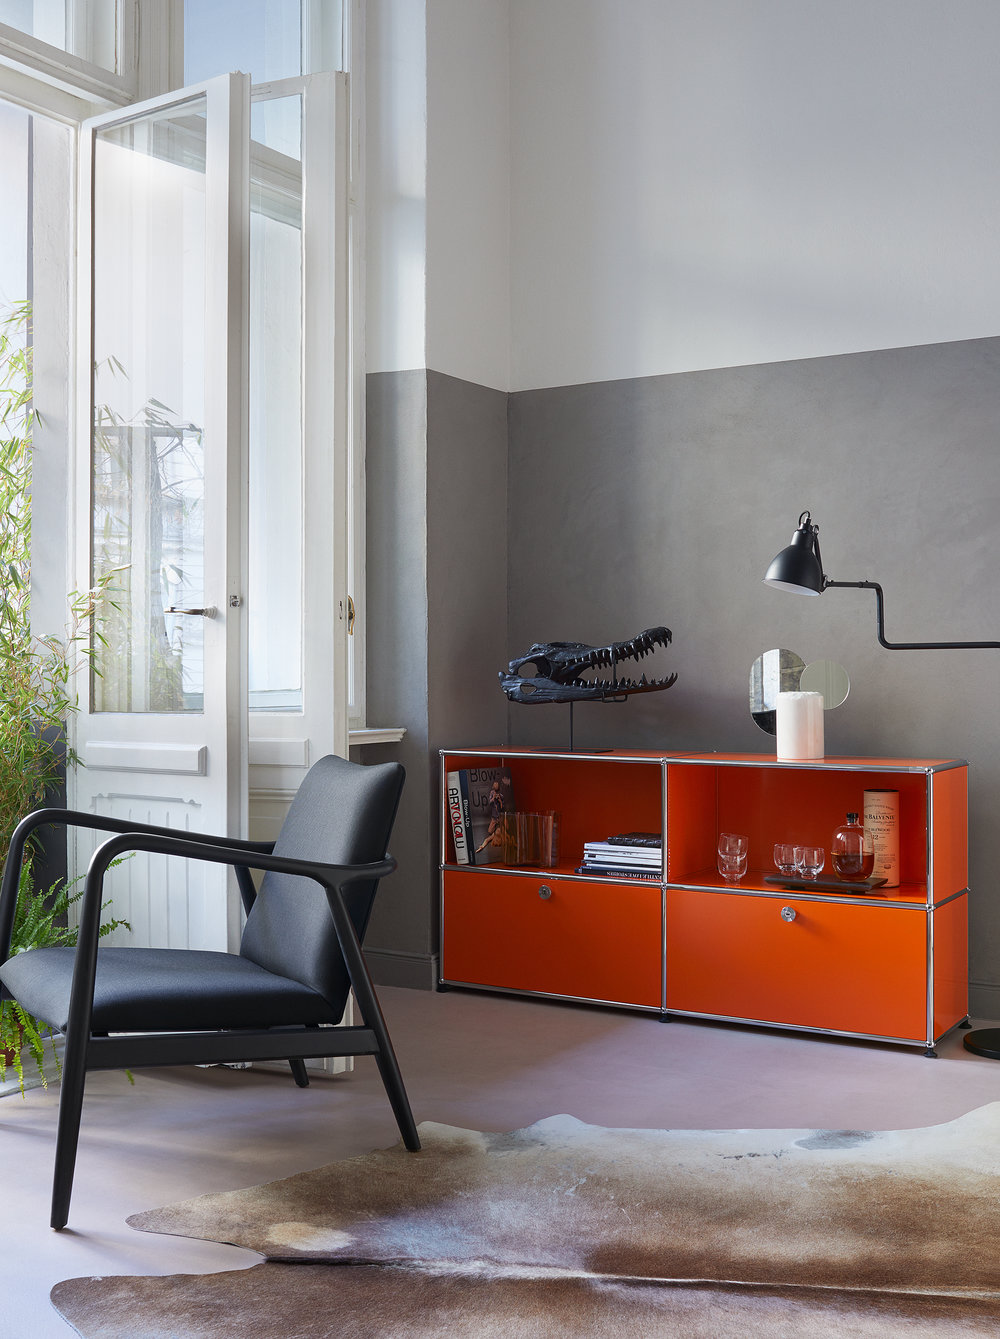 USM_Sideboard-Orange_0067v2.jpg